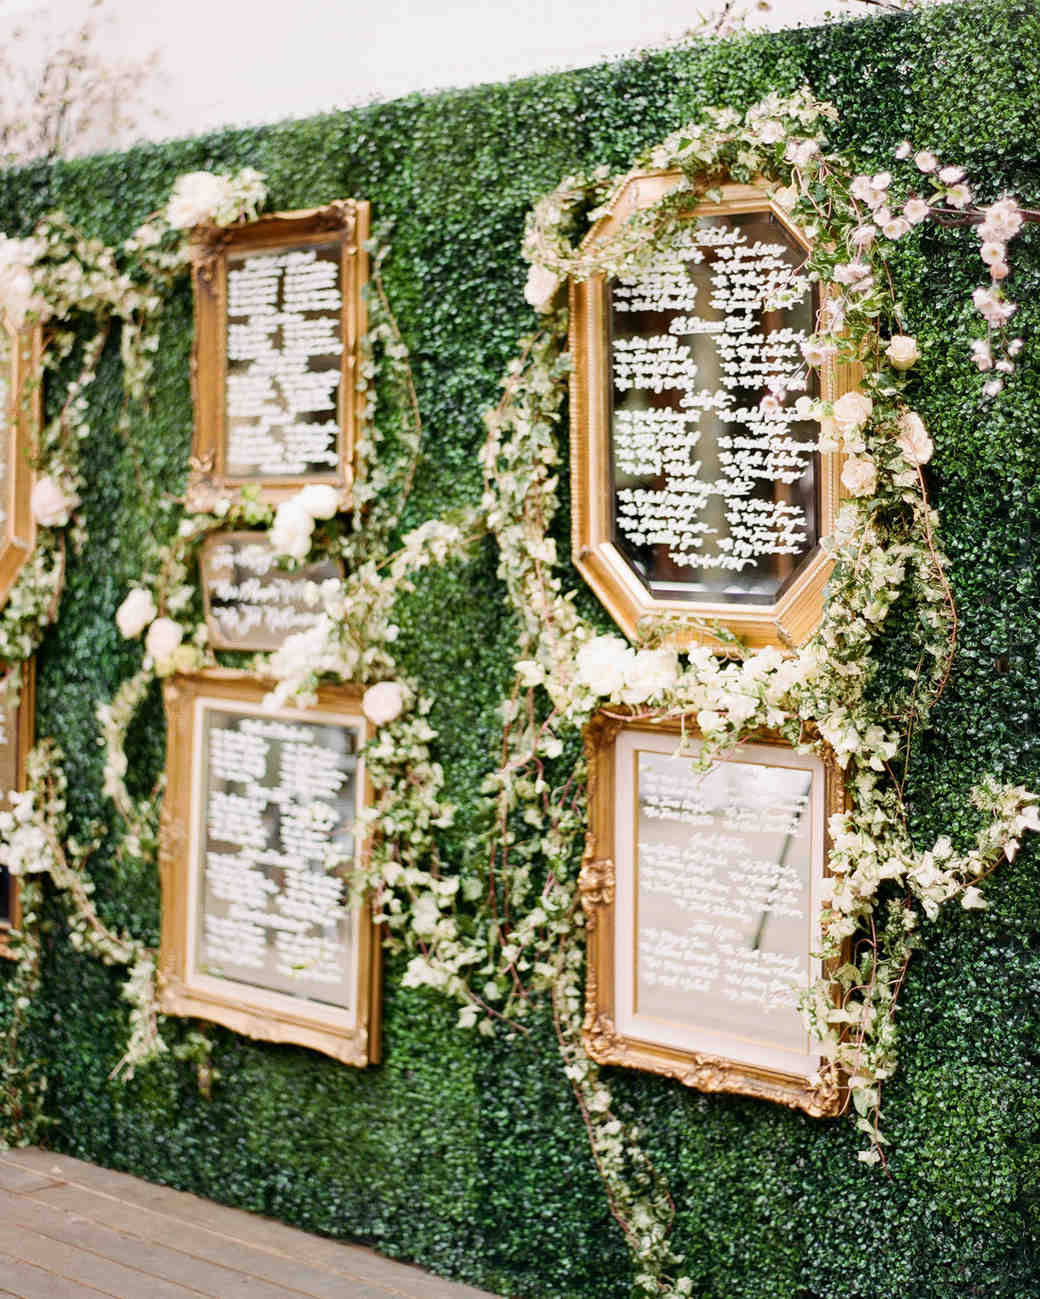 Outdoor Wedding Seating Ideas: 25 Unique Wedding Seating Charts To Guide Guests To Their